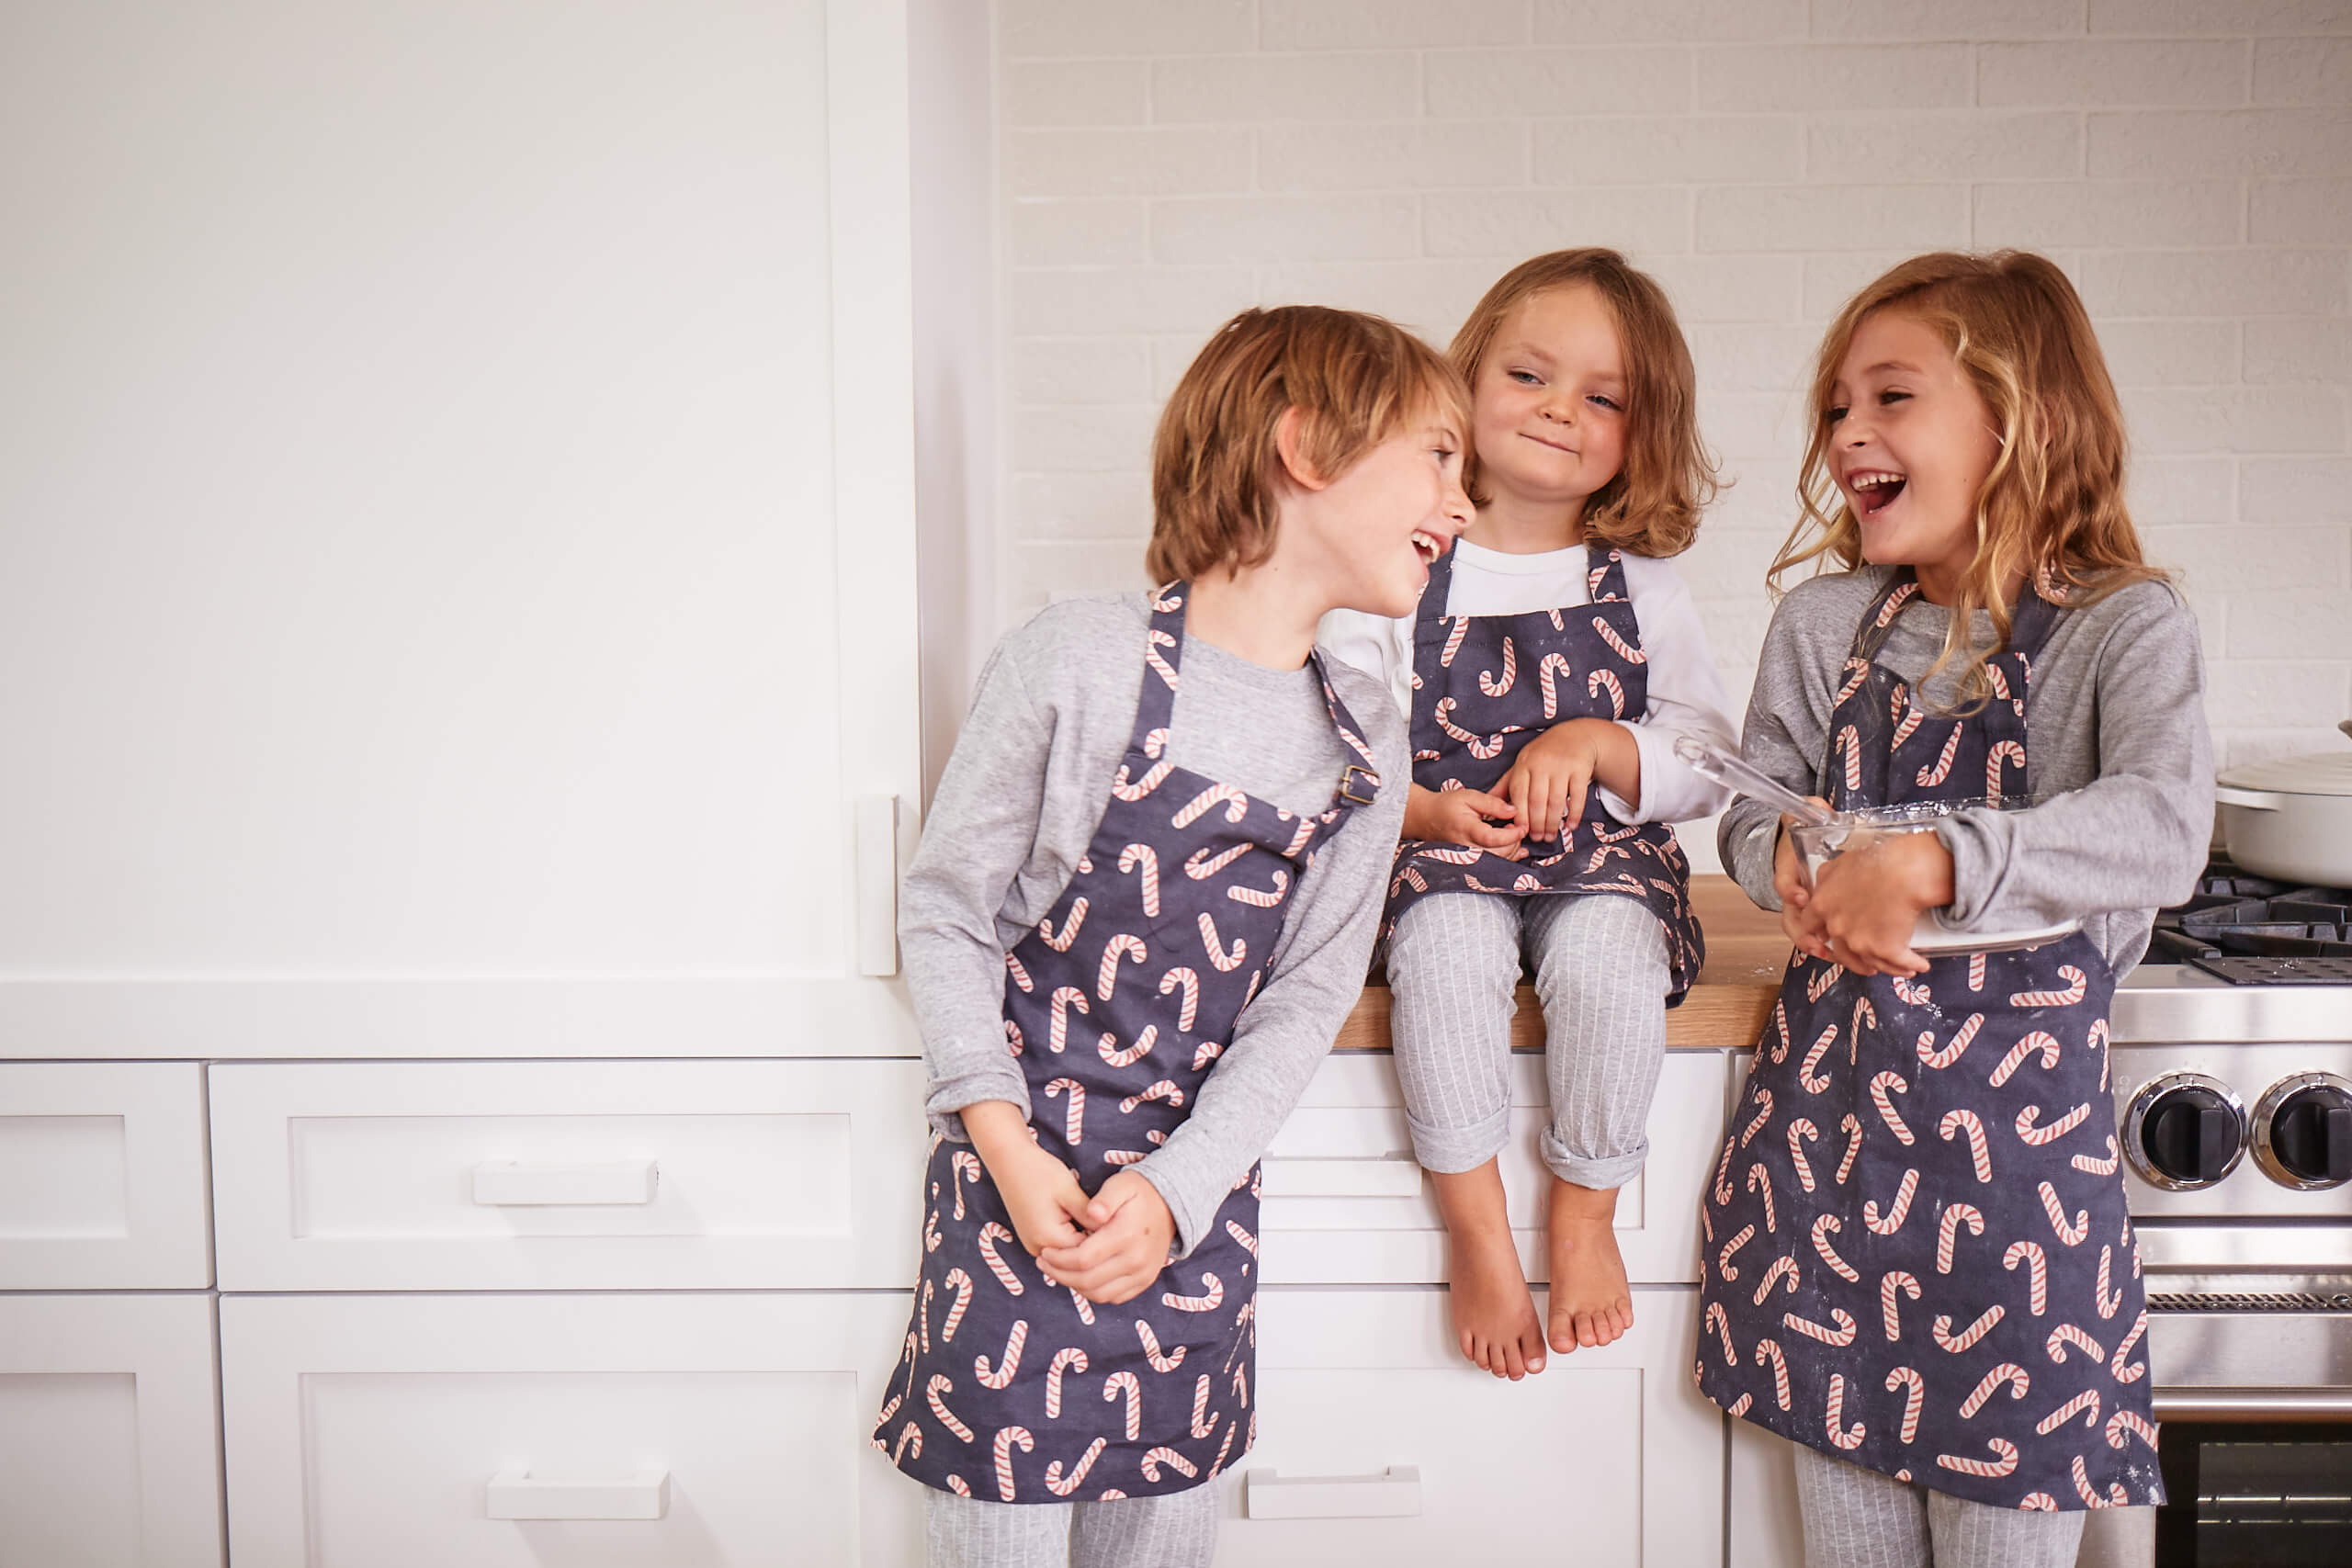 Kids laughing in aprons